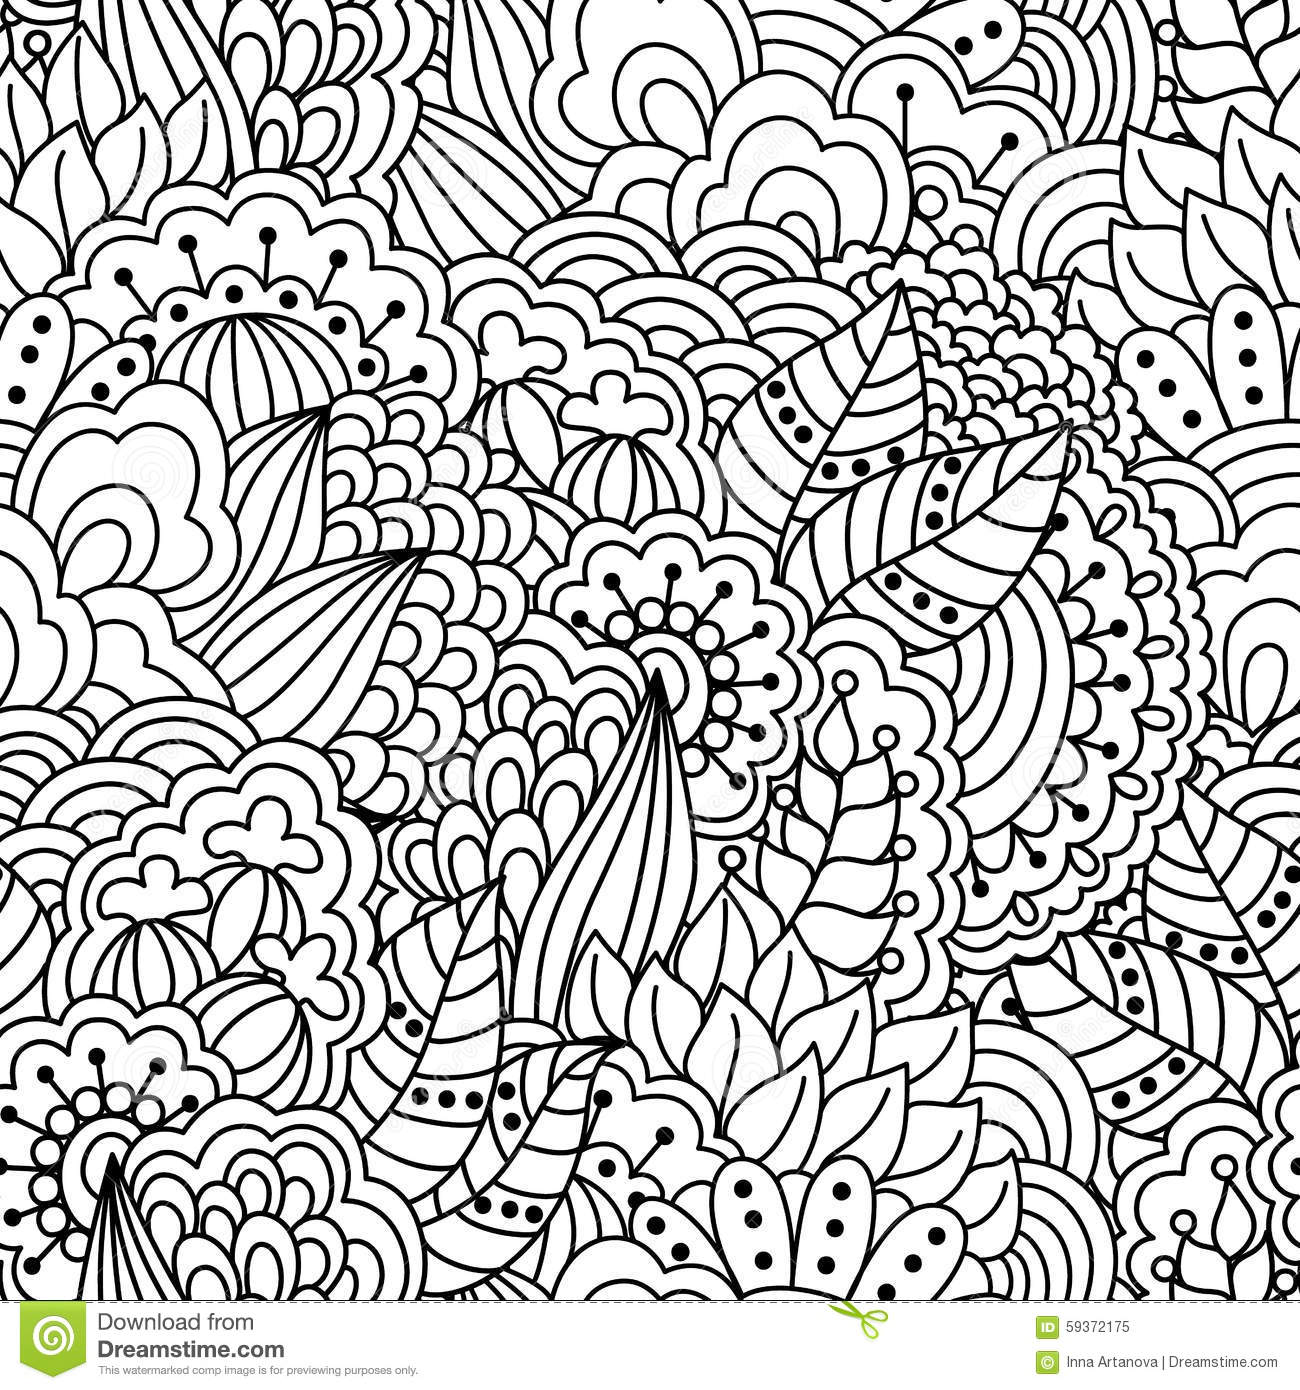 d arte mural coloring pages - photo #21